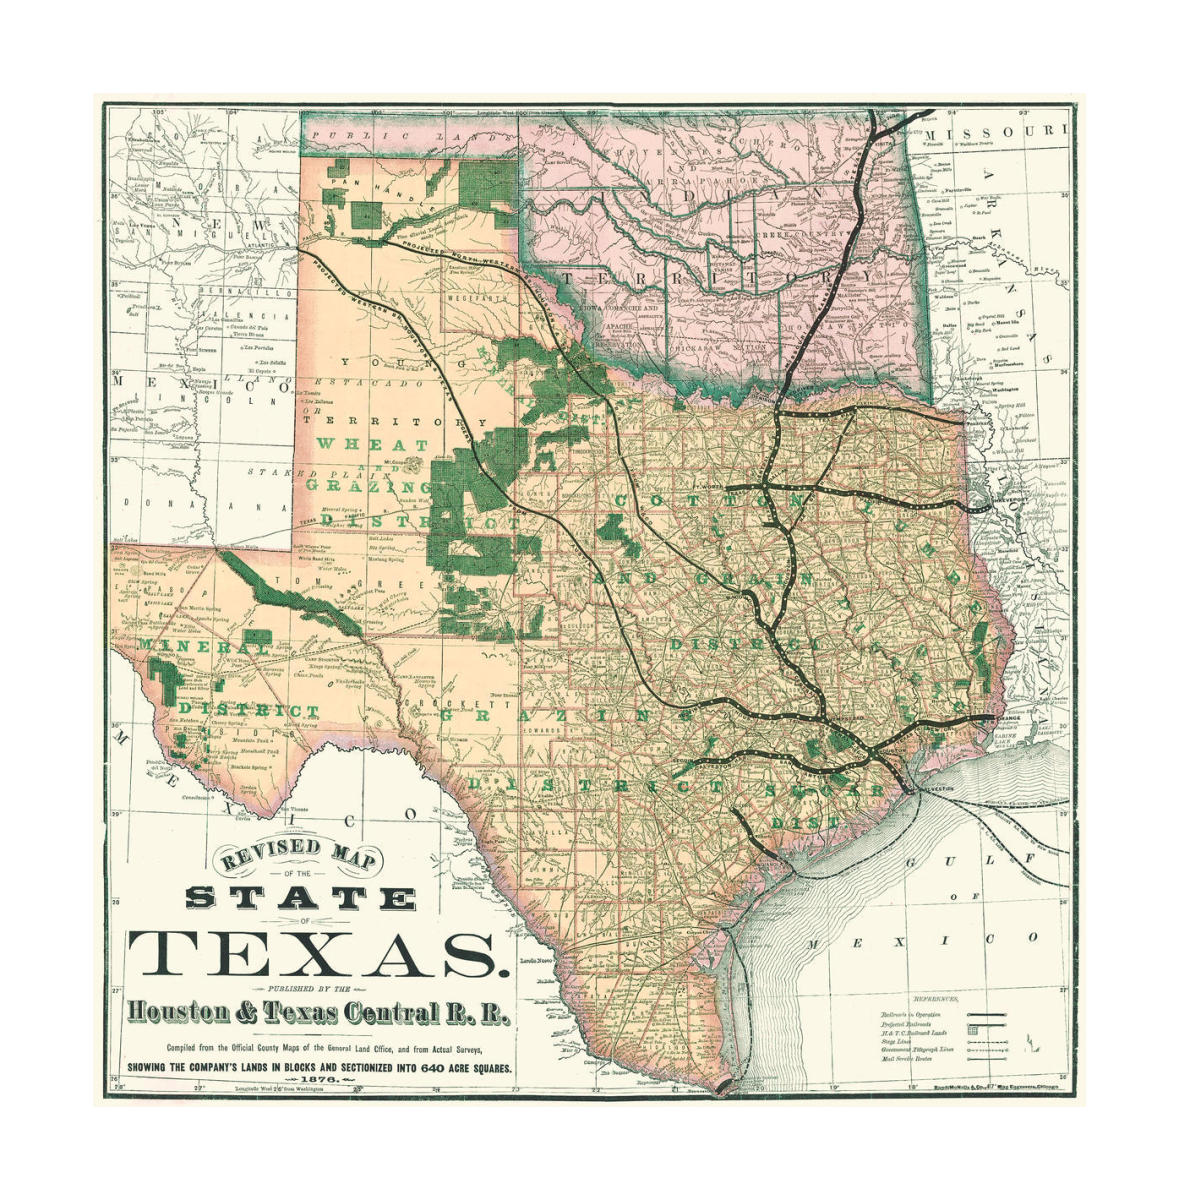 Houston And Texas Central Railroad Revised Map Of The State Of